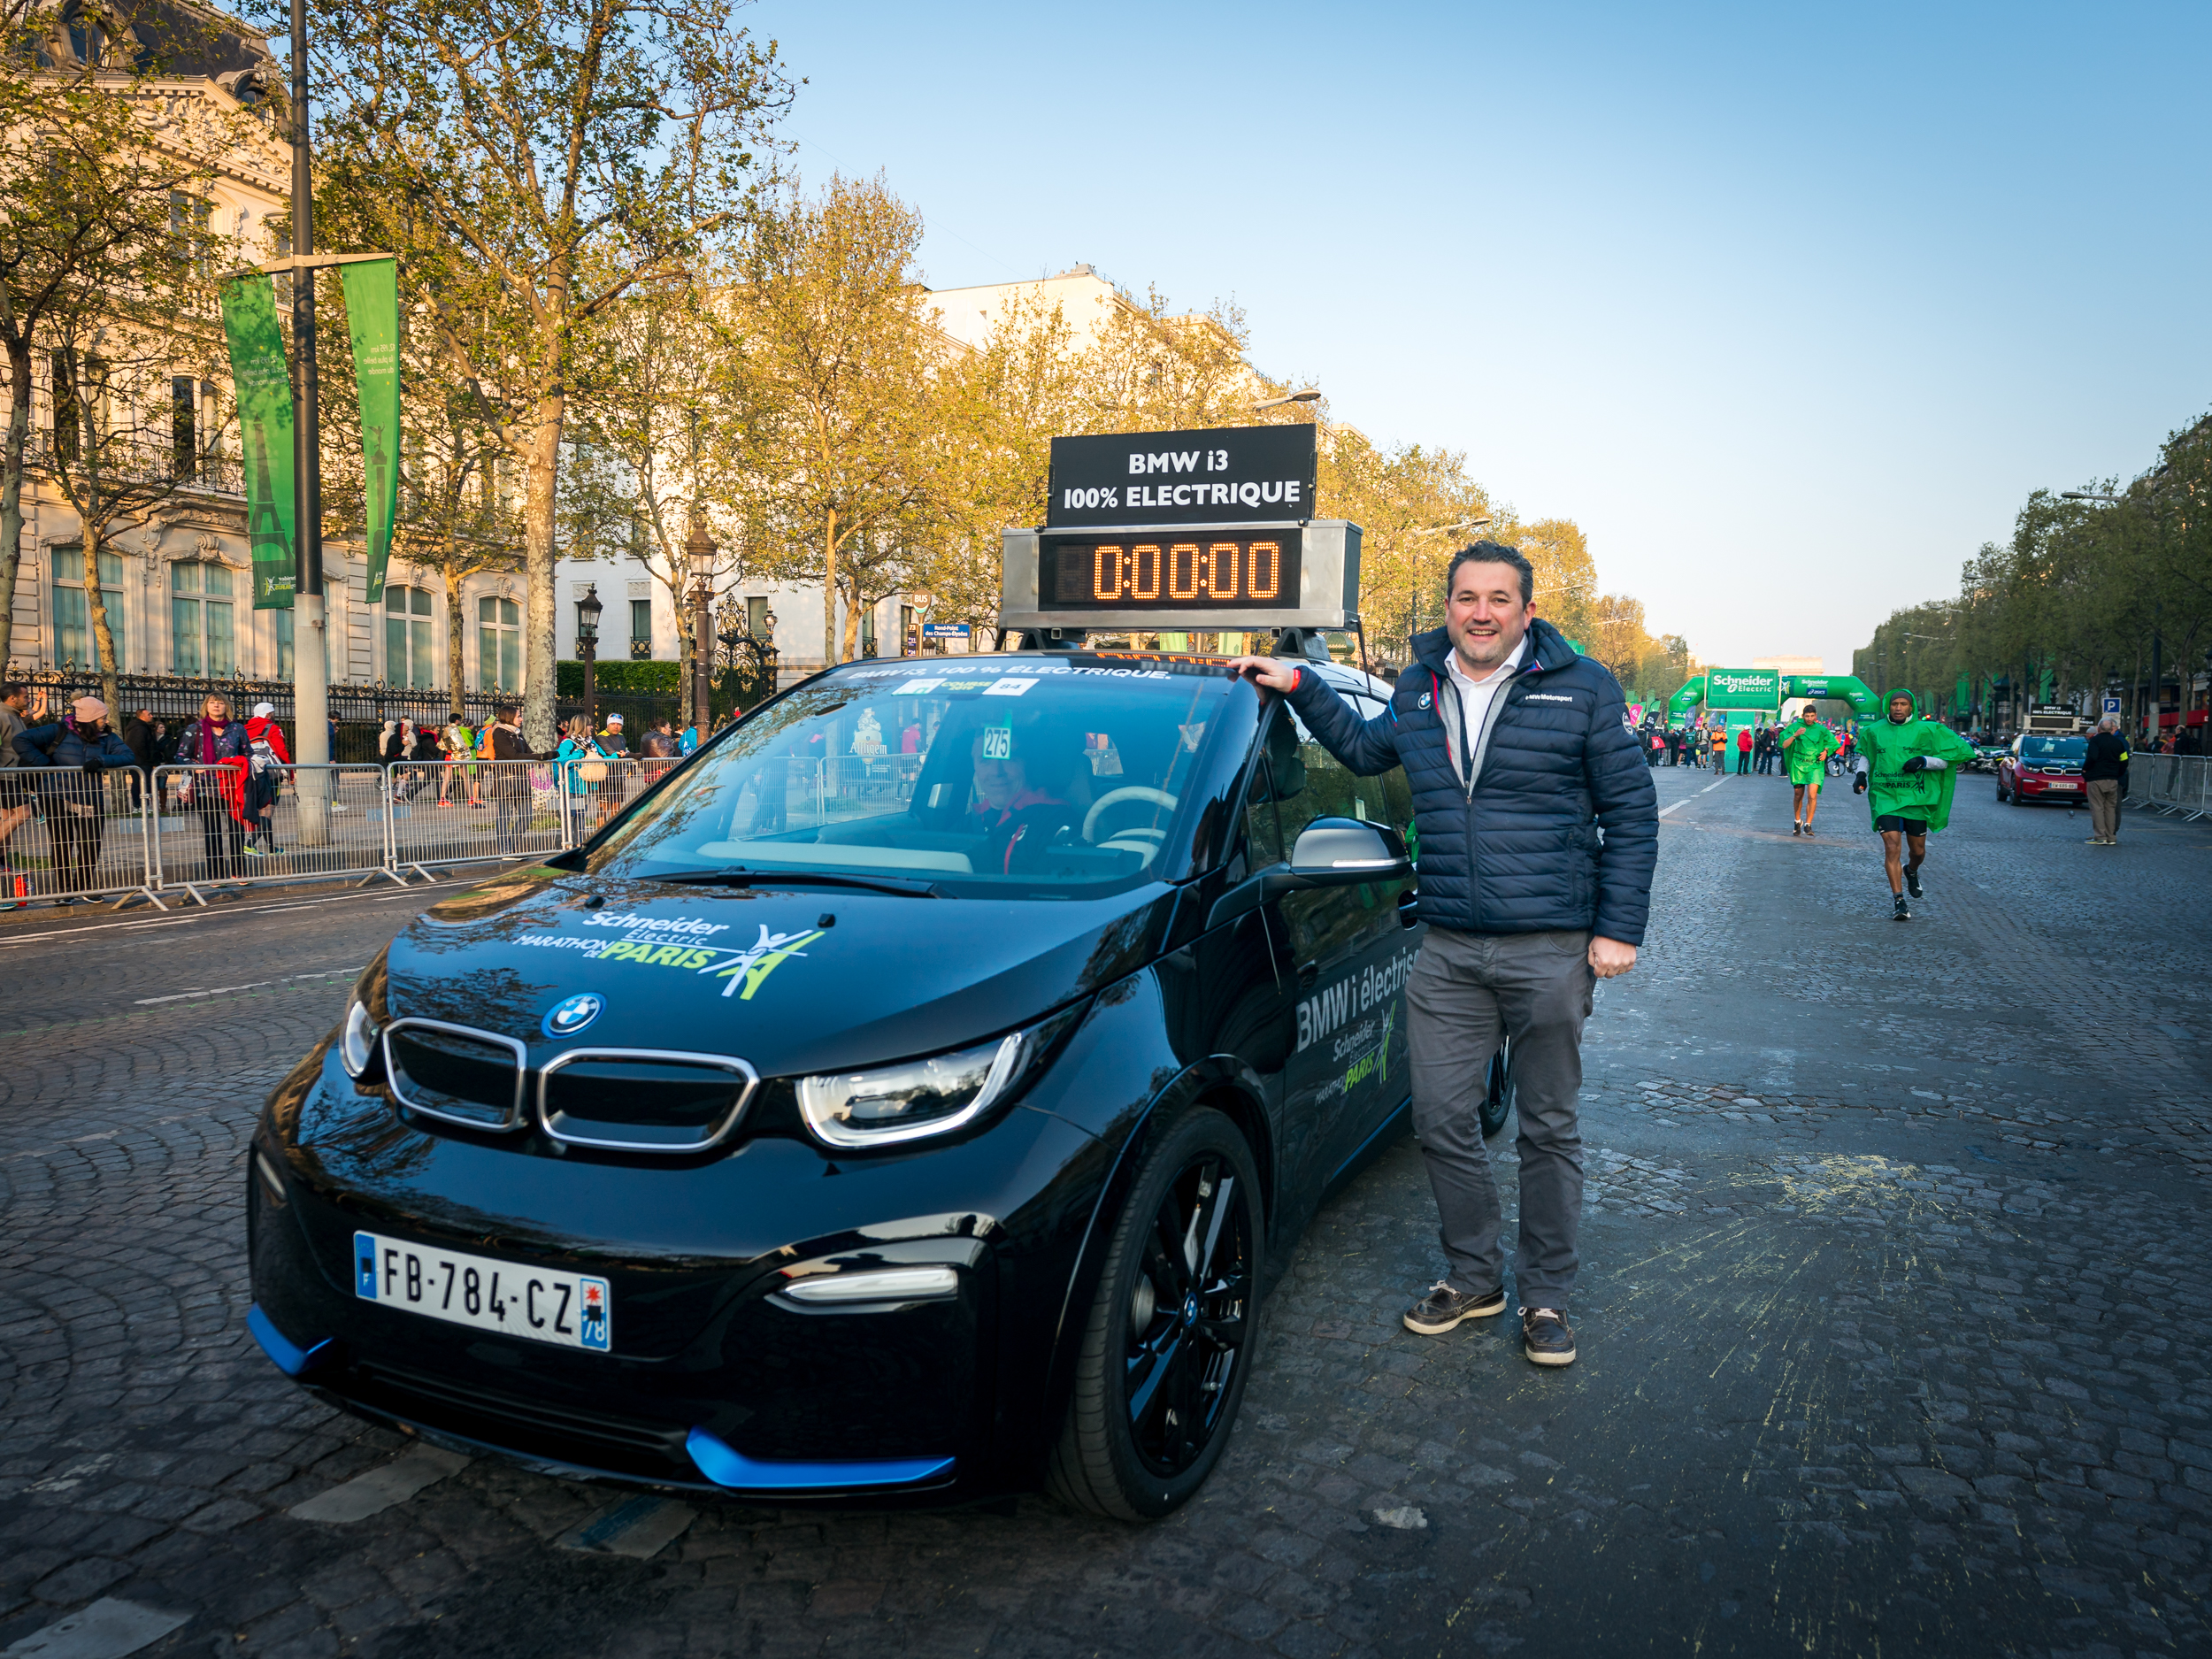 BMW_Marathon Paris 2019_Florian Leger_SHARE & DARE_HD_ N°-23.jpg